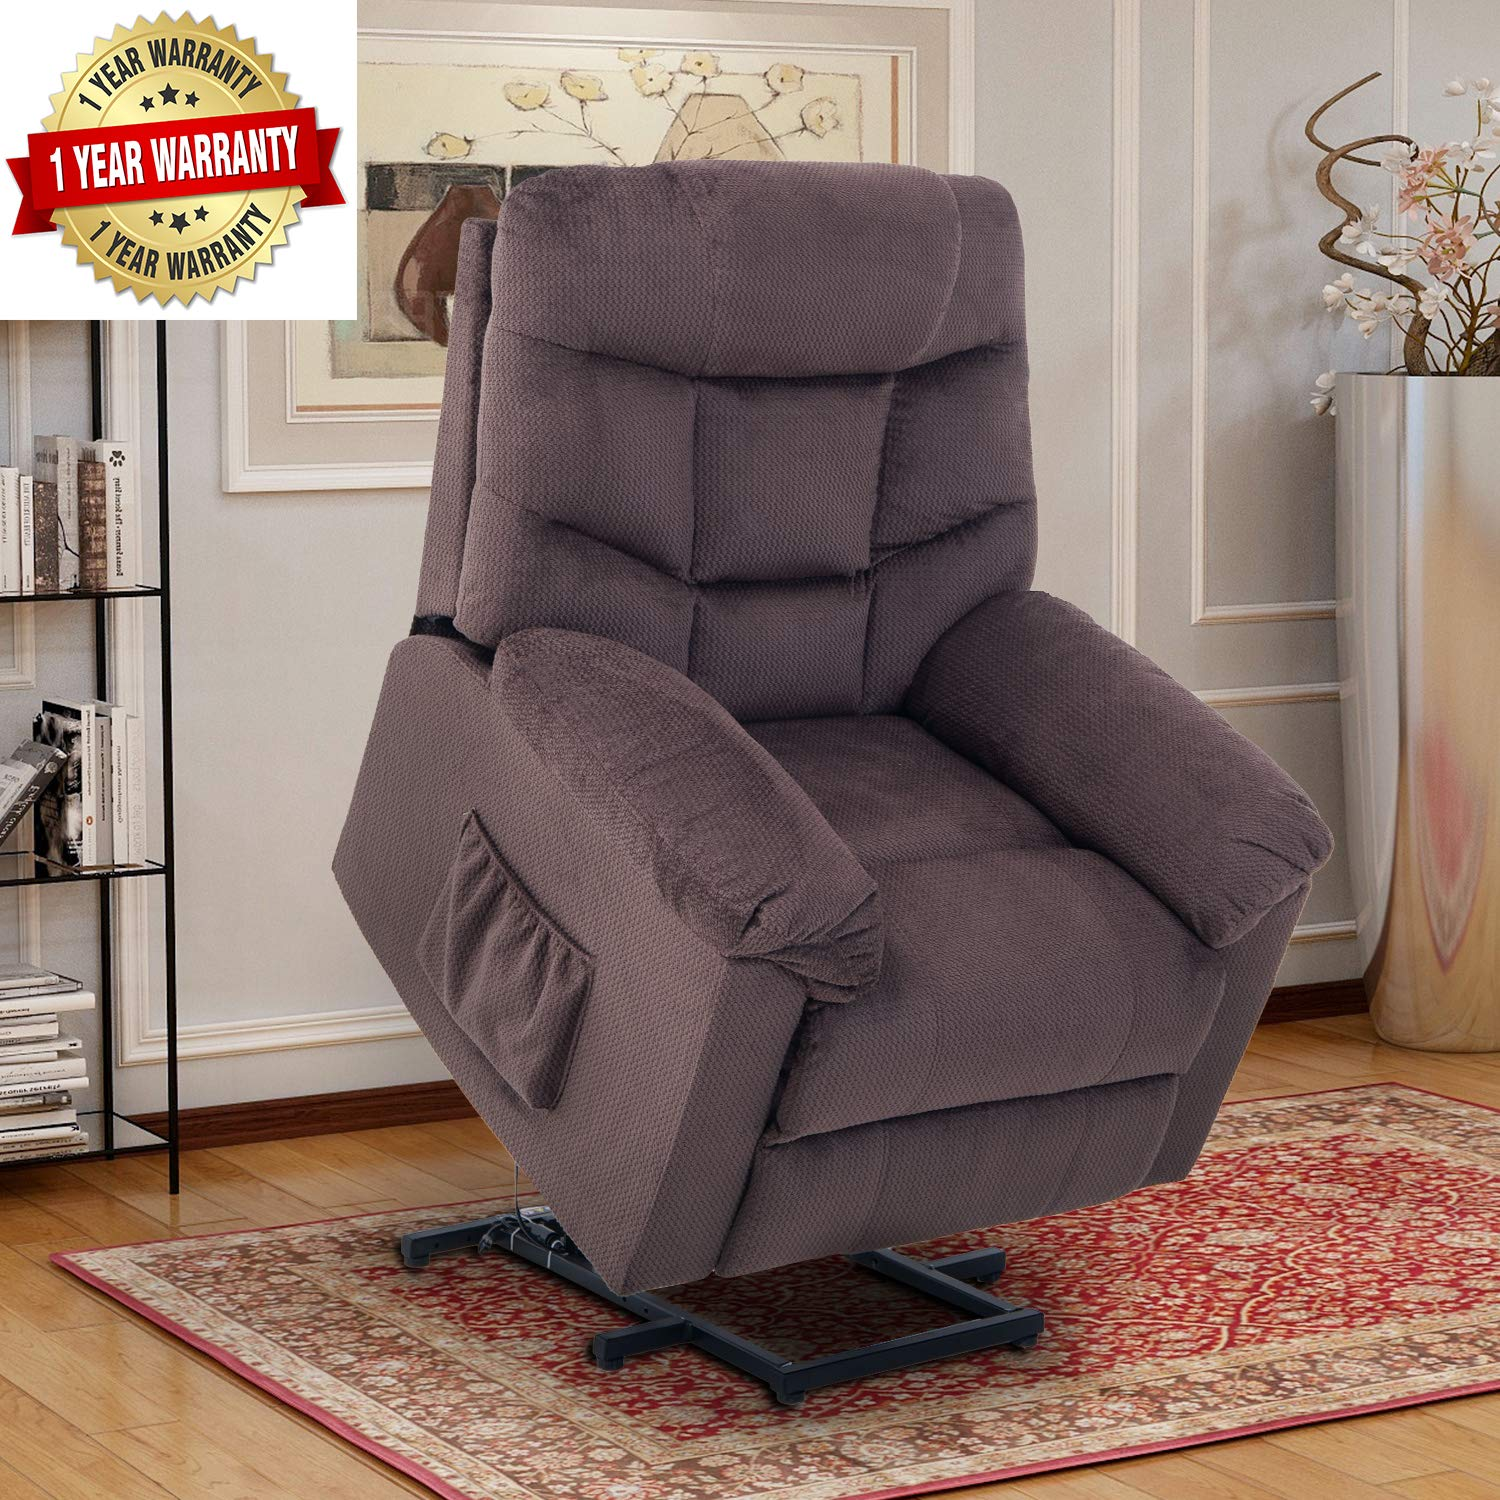 Lift Chairs for Elderly - Lift Chairs Recliners Lift Chairs Electric Recliner Chairs with Remote Control Soft Fabric Lounge by Harper & Bright Designs